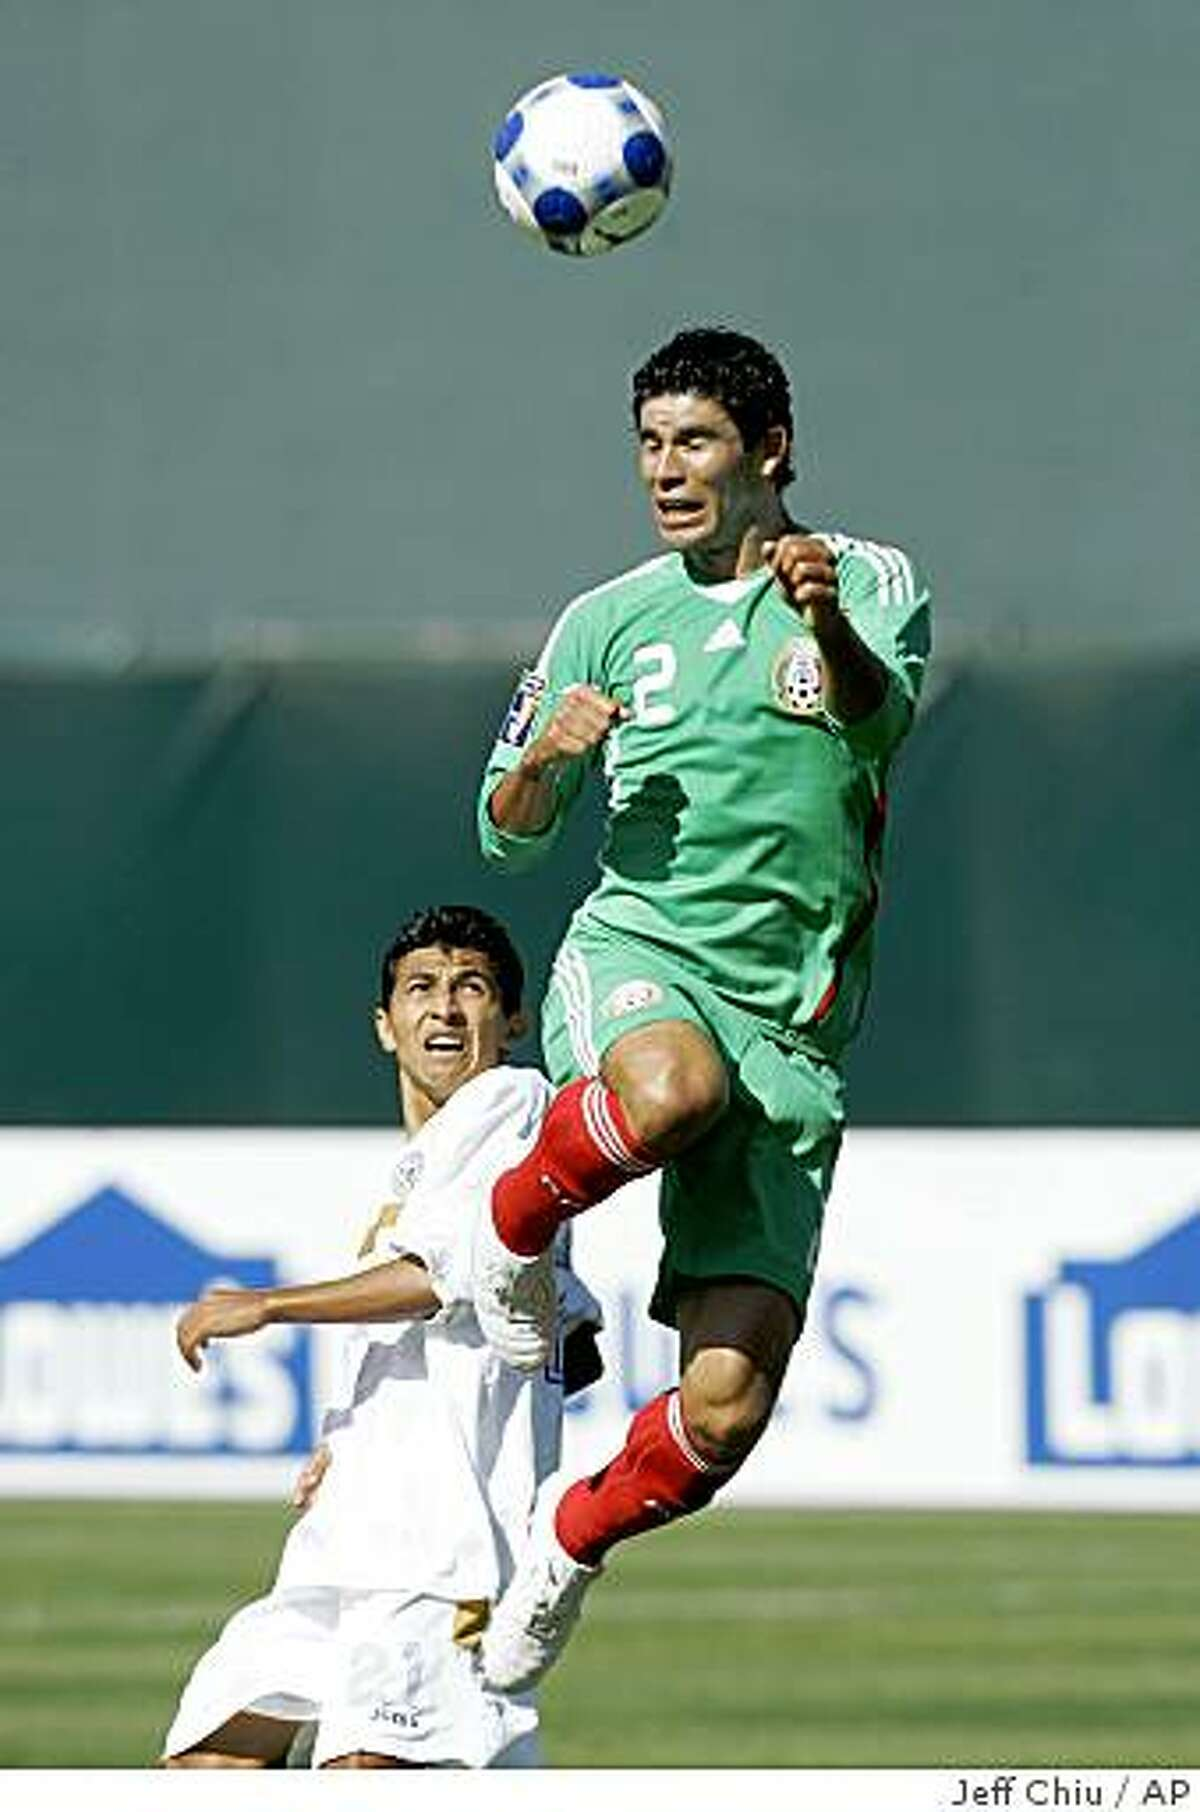 Mexico's Jonny Magallon, top, heads the ball in front of Nicaragua's David Martinez in the first half of a CONCACAF Gold Cup soccer match Sunday, July 5, 2009, in Oakland, Calif. (AP Photo/Jeff Chiu)